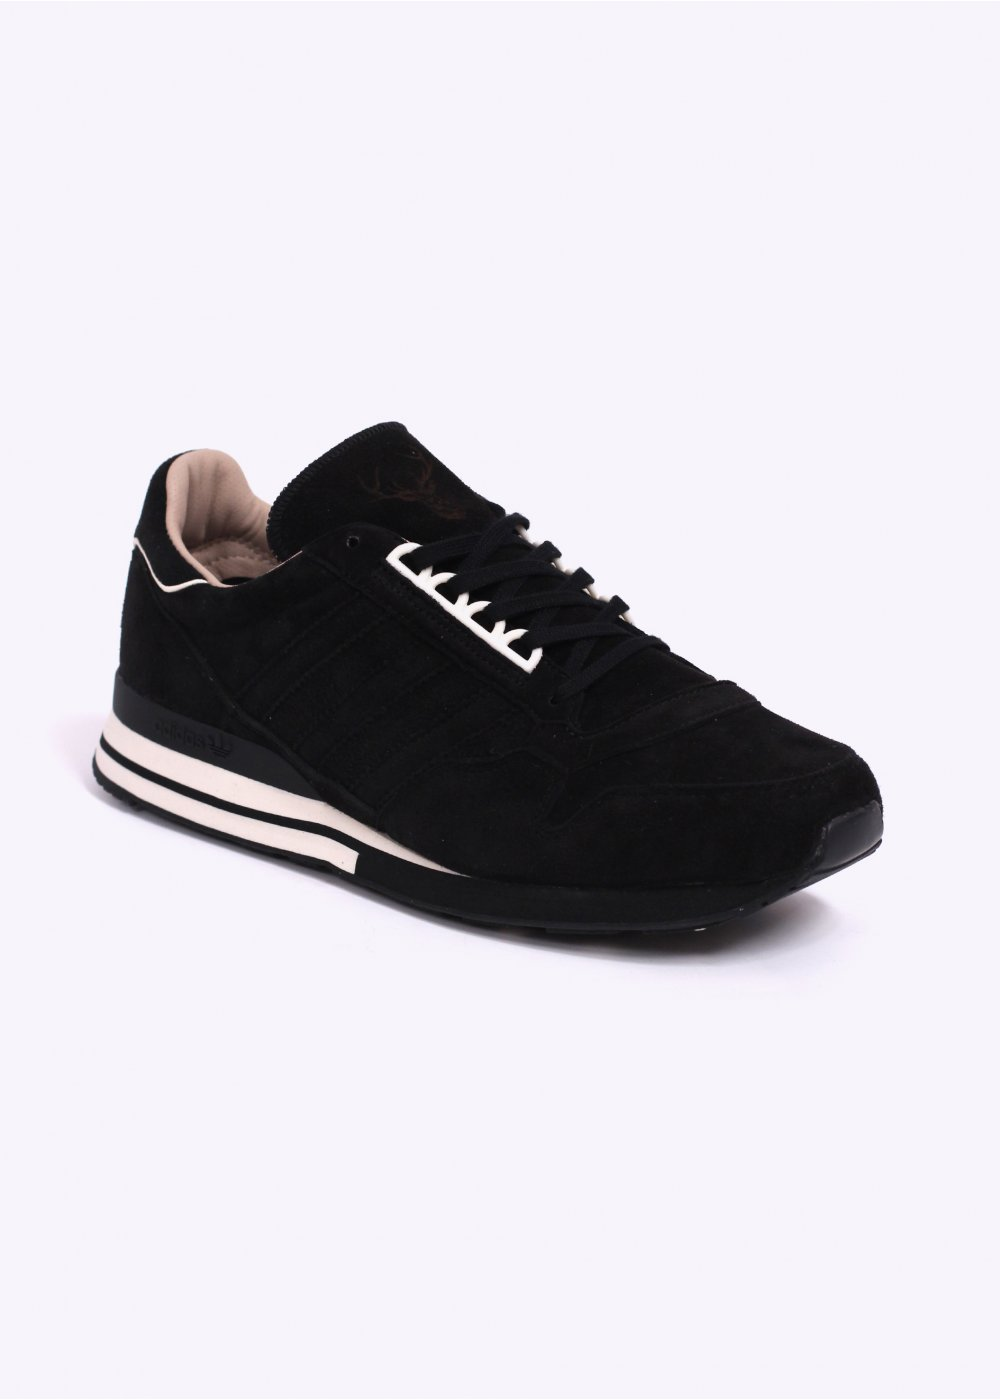 59f6d36776ecd adidas Originals ZX 500 OG  Made In Germany  Trainers - Black ...